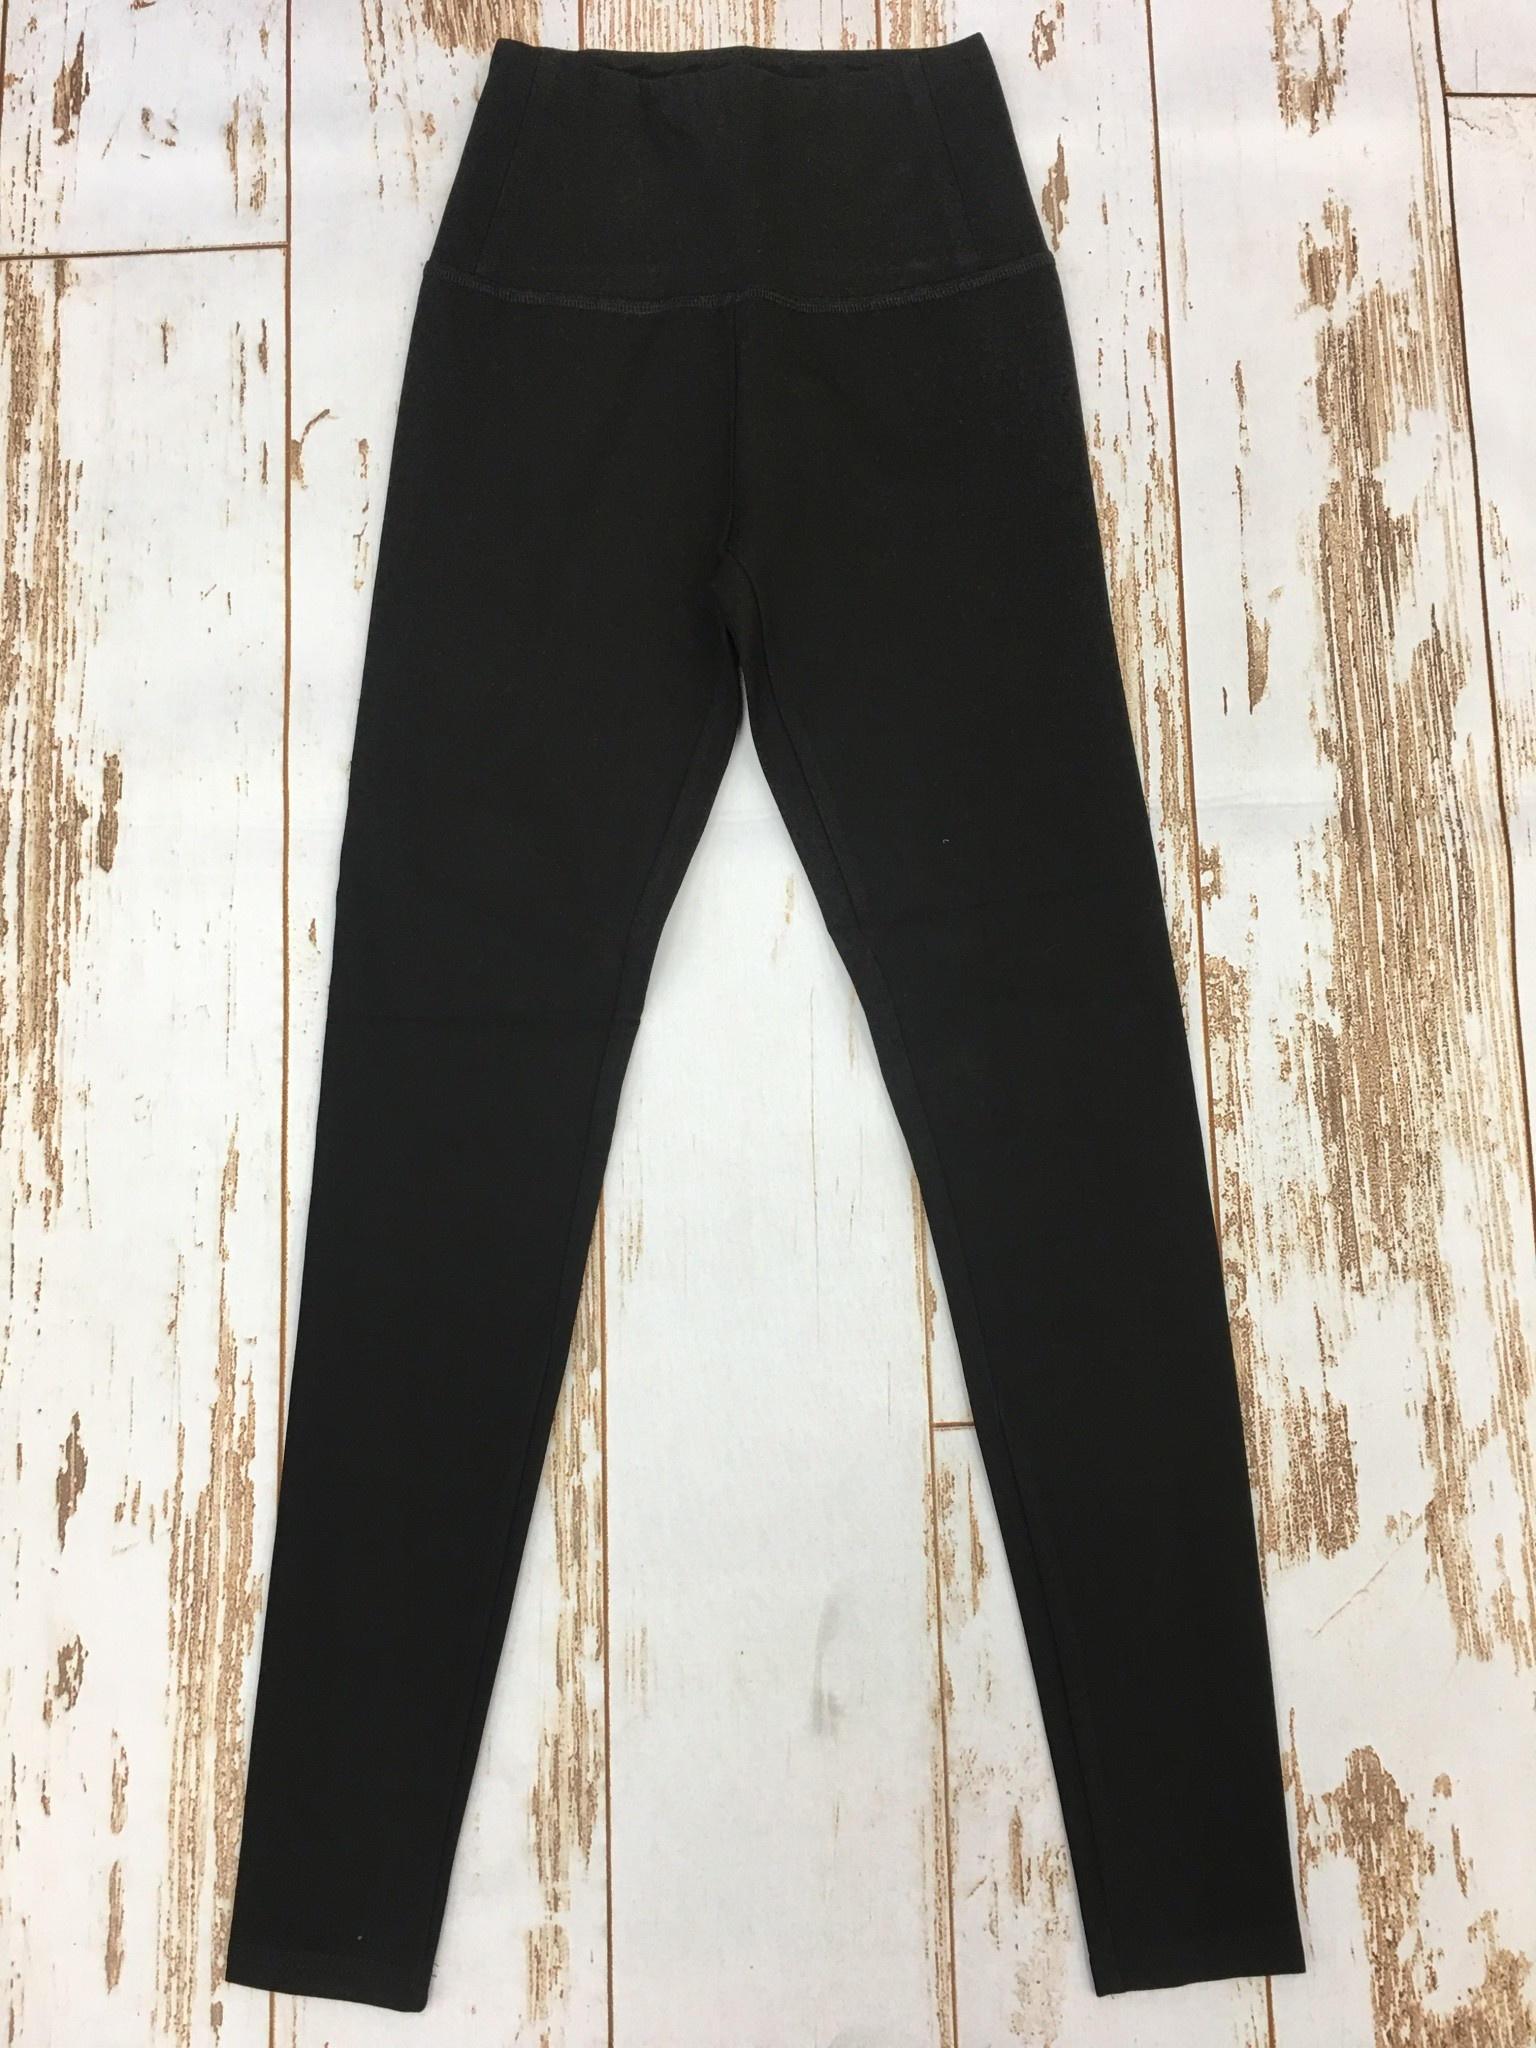 RD Style Black Woven Pant